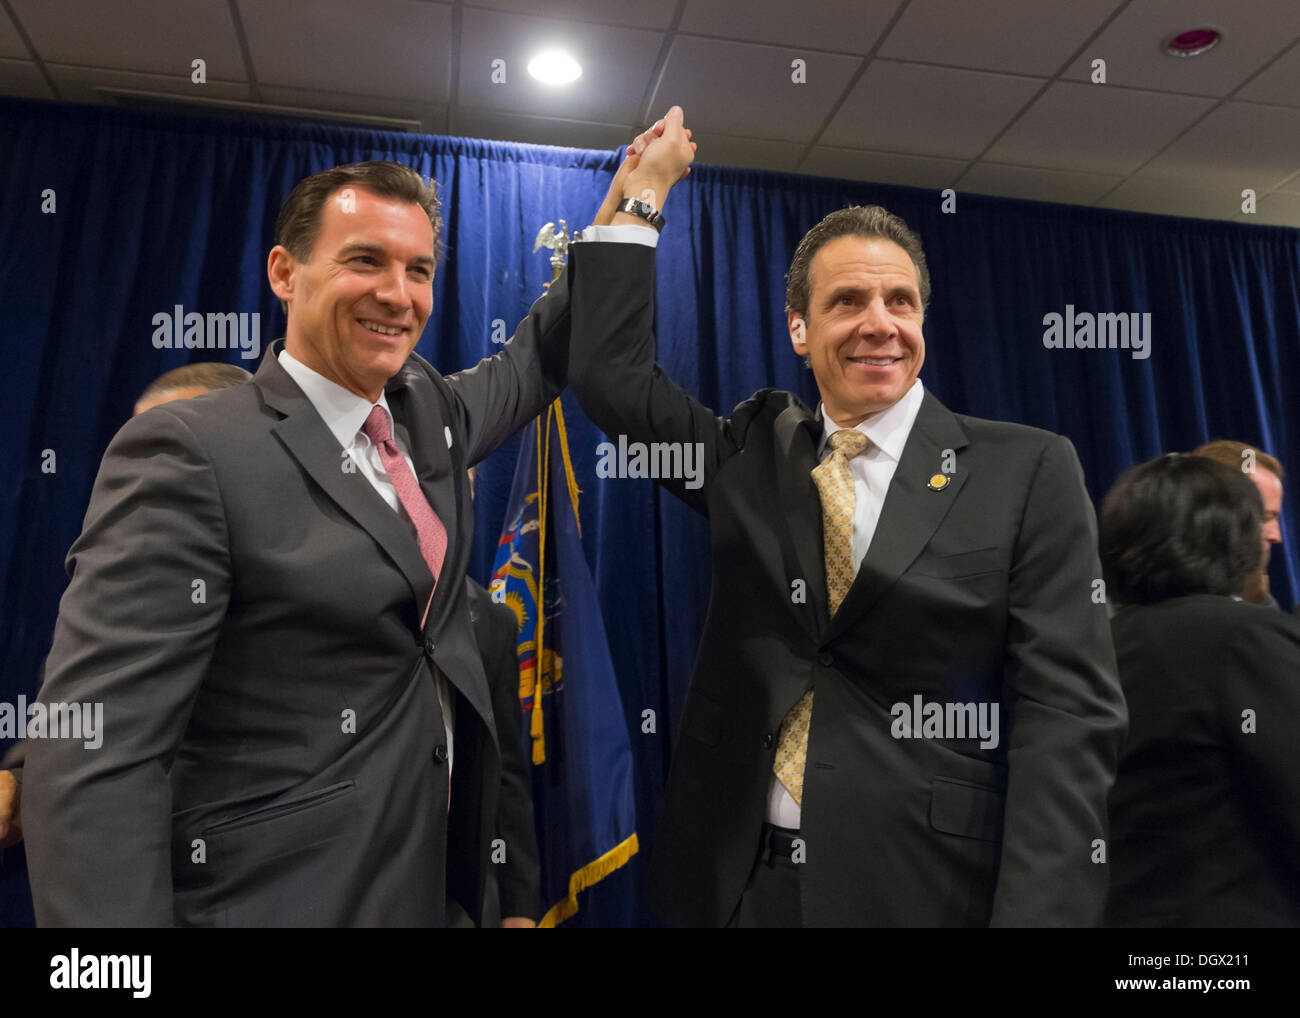 Albertson, New York, U.S. 26th October 2013. R-L, New York Governor ANDREW CUOMO endorses TOM SUOZZI for Nassau County Executive, with supporters, including veterans, union members, and Democratic candidates for office in Nassau and Suffoilk Counties in Long Island, filling the announcement room at the Albertson Veterans of Foreign Wars VFW Post. Democrat Suozzi, the former Nassau County Executive, and Republican encumbant Mangano face each other in a rematch in the upcoming November 5th election. © Ann E Parry/Alamy Live News - Stock Image